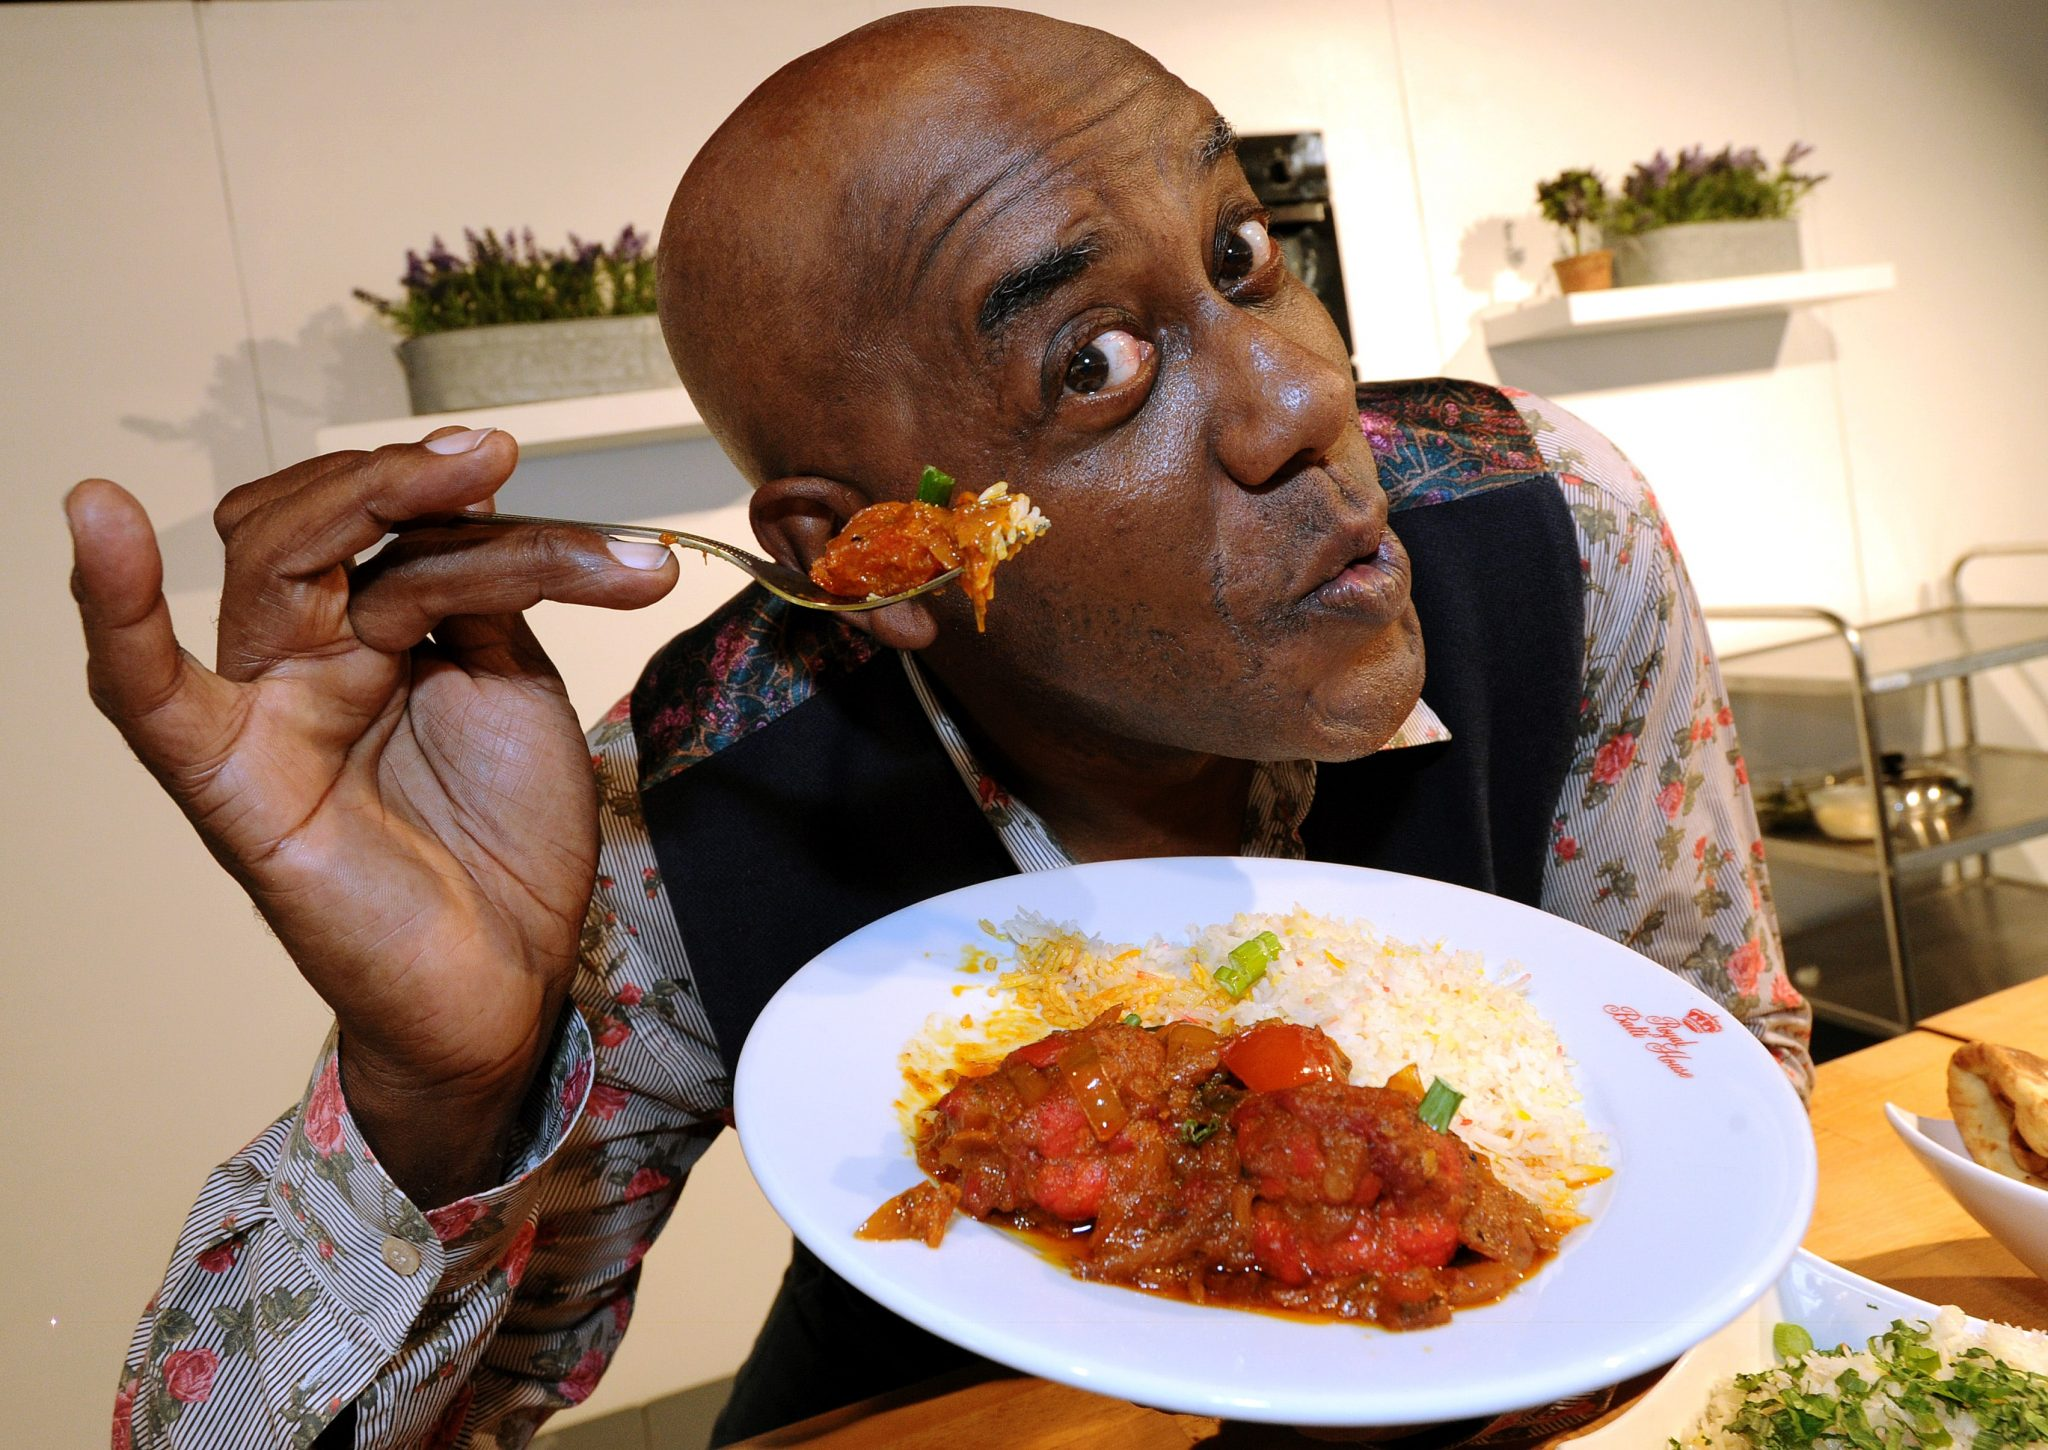 TV CHEF AINSLEY BACKS BOLTON'S NEW CURRY TO RIVAL THE BIRMINGHAM BALTI